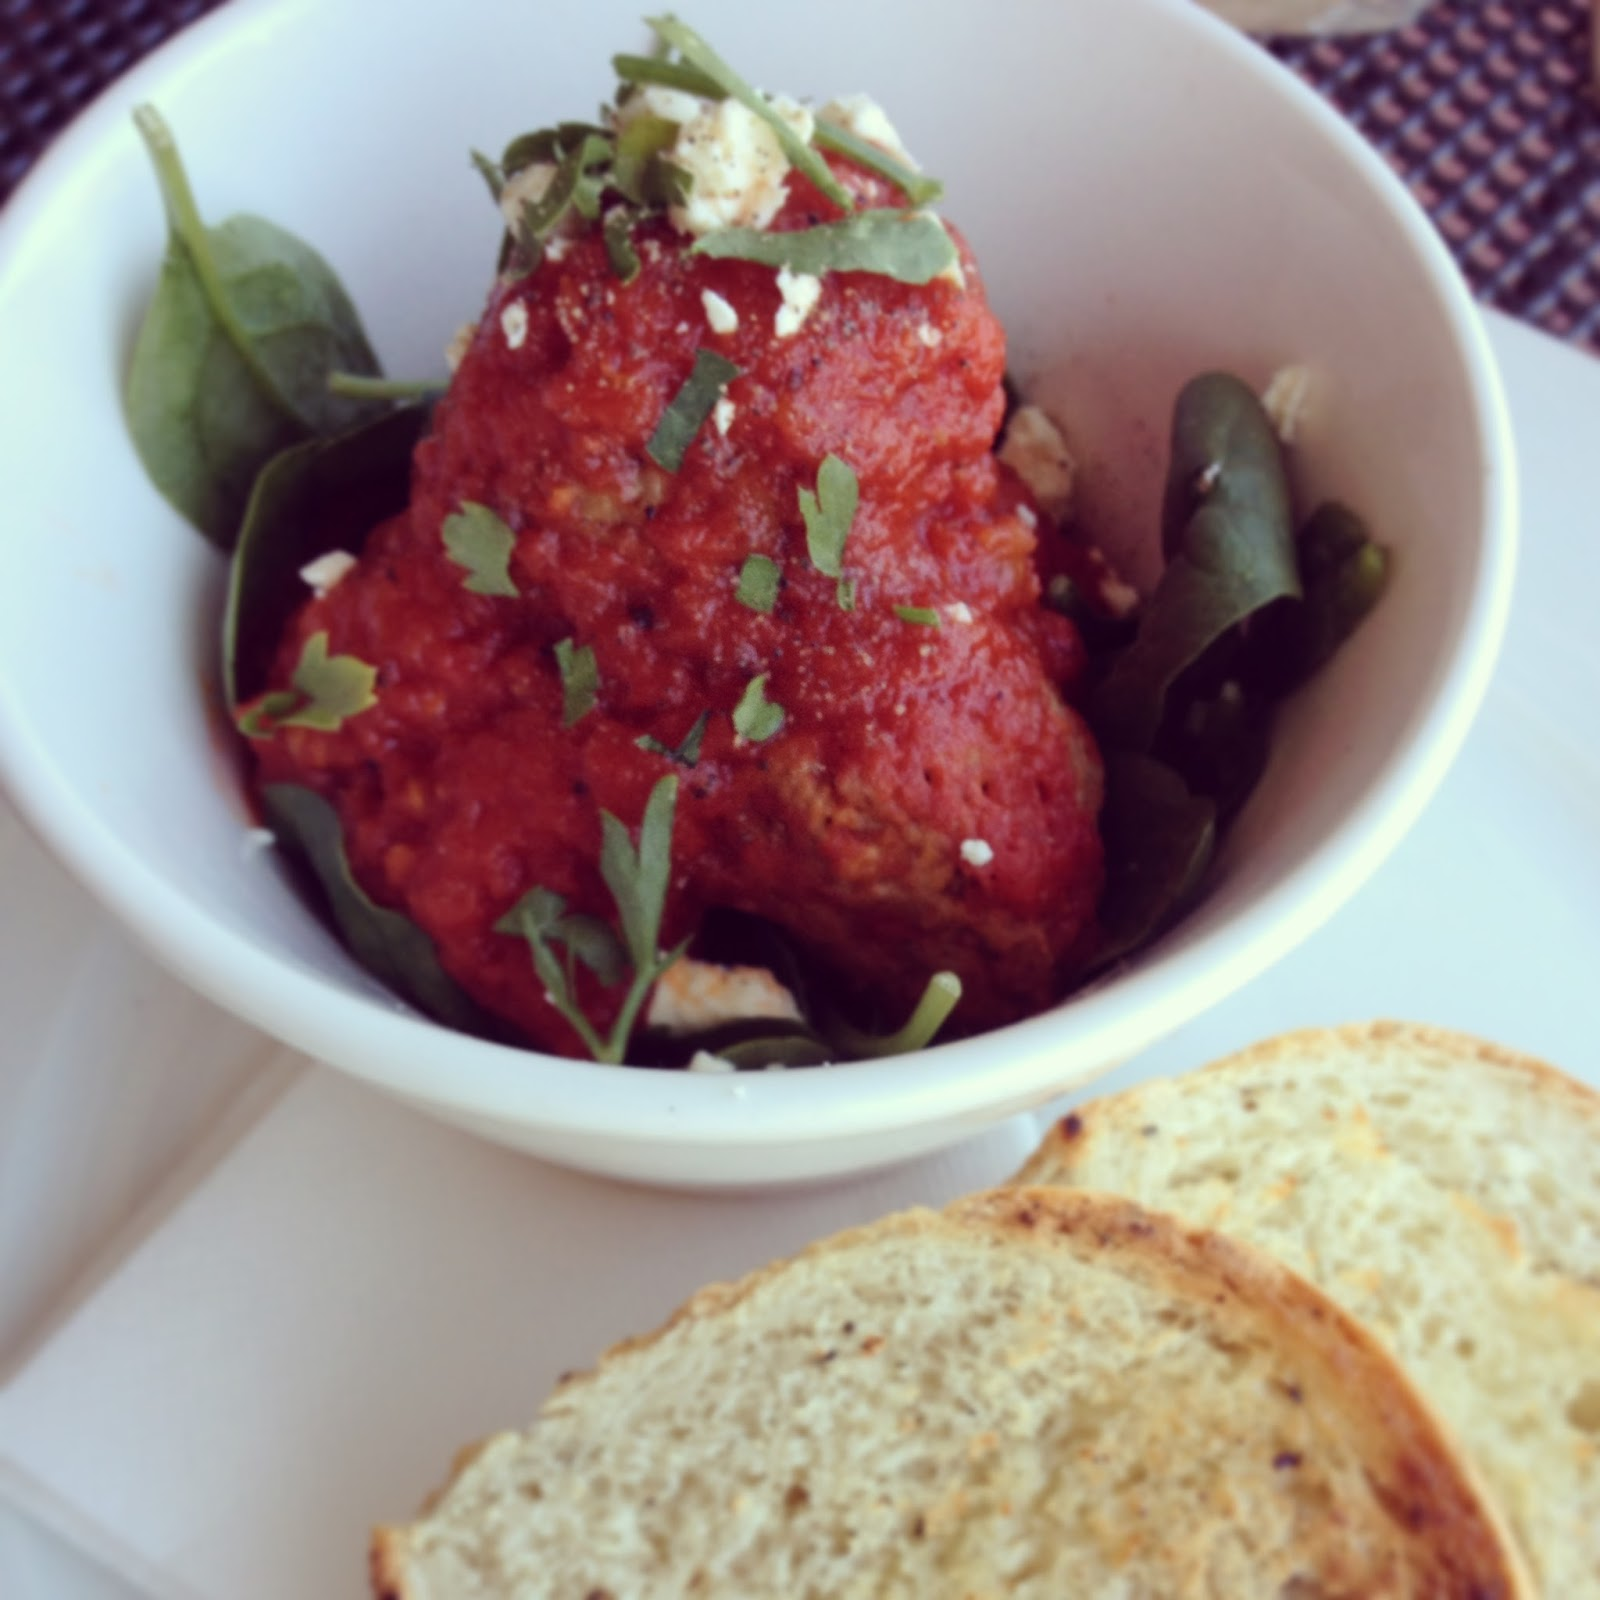 Eire, Cafe, Adelaide, Spicy Lamb meatballs, Clapham